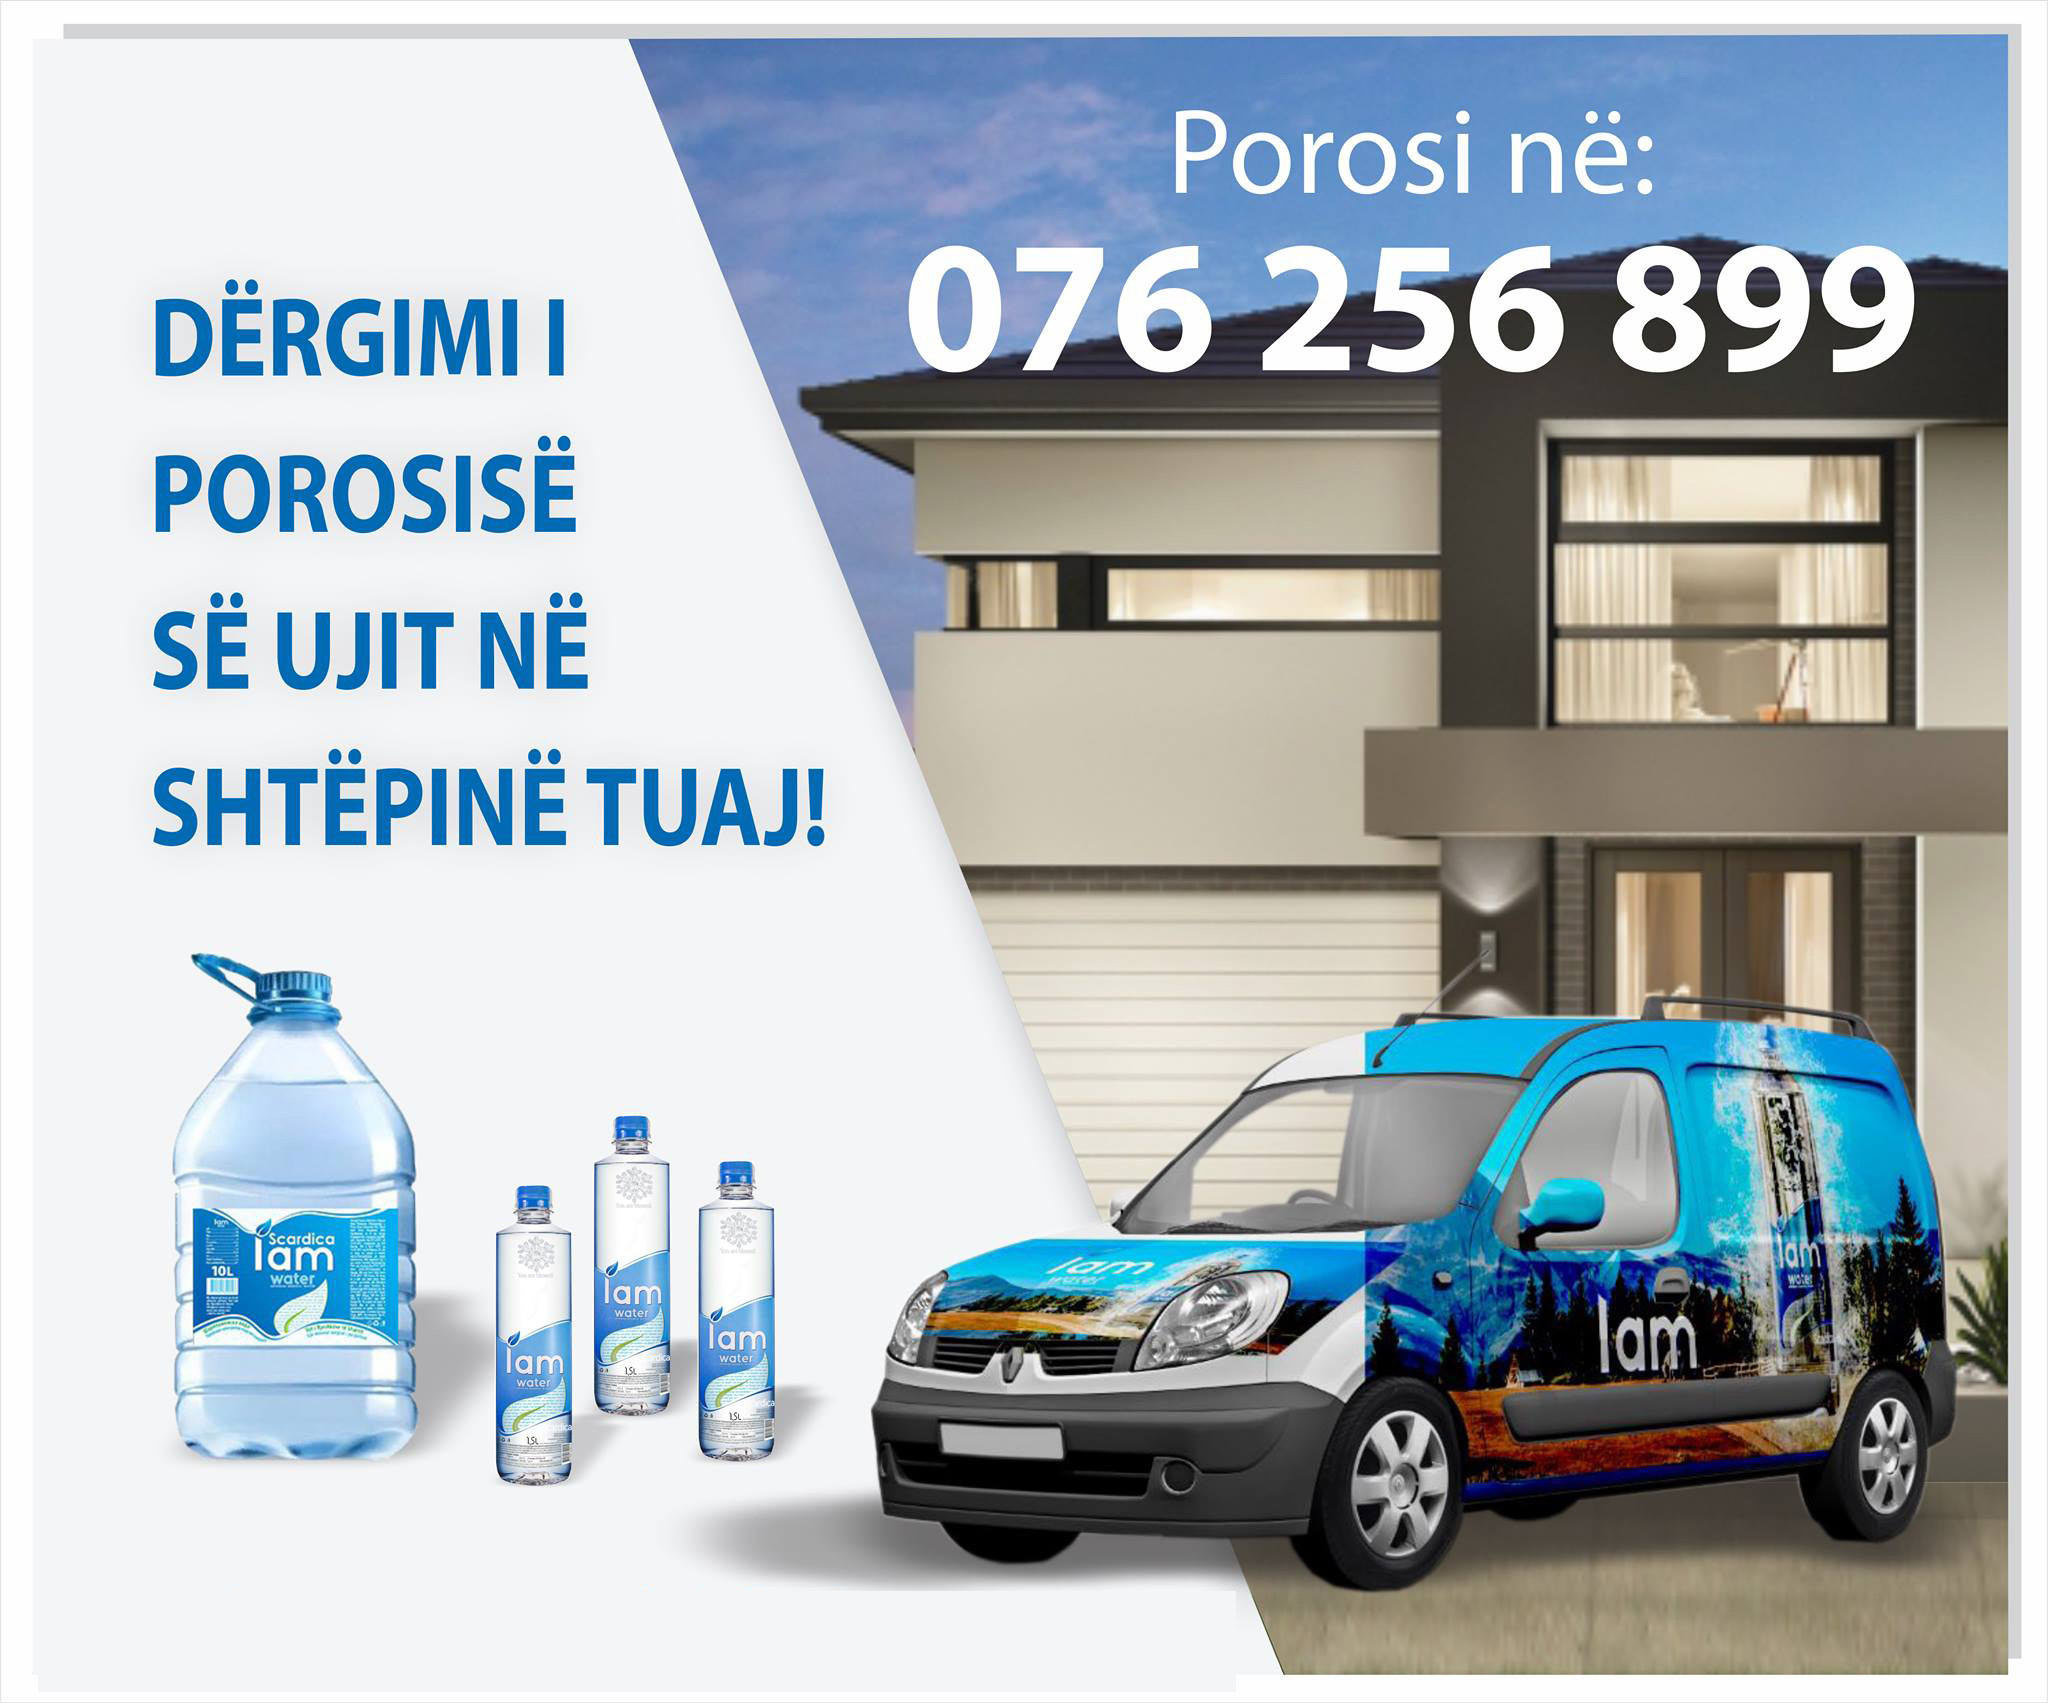 Water delivery servise